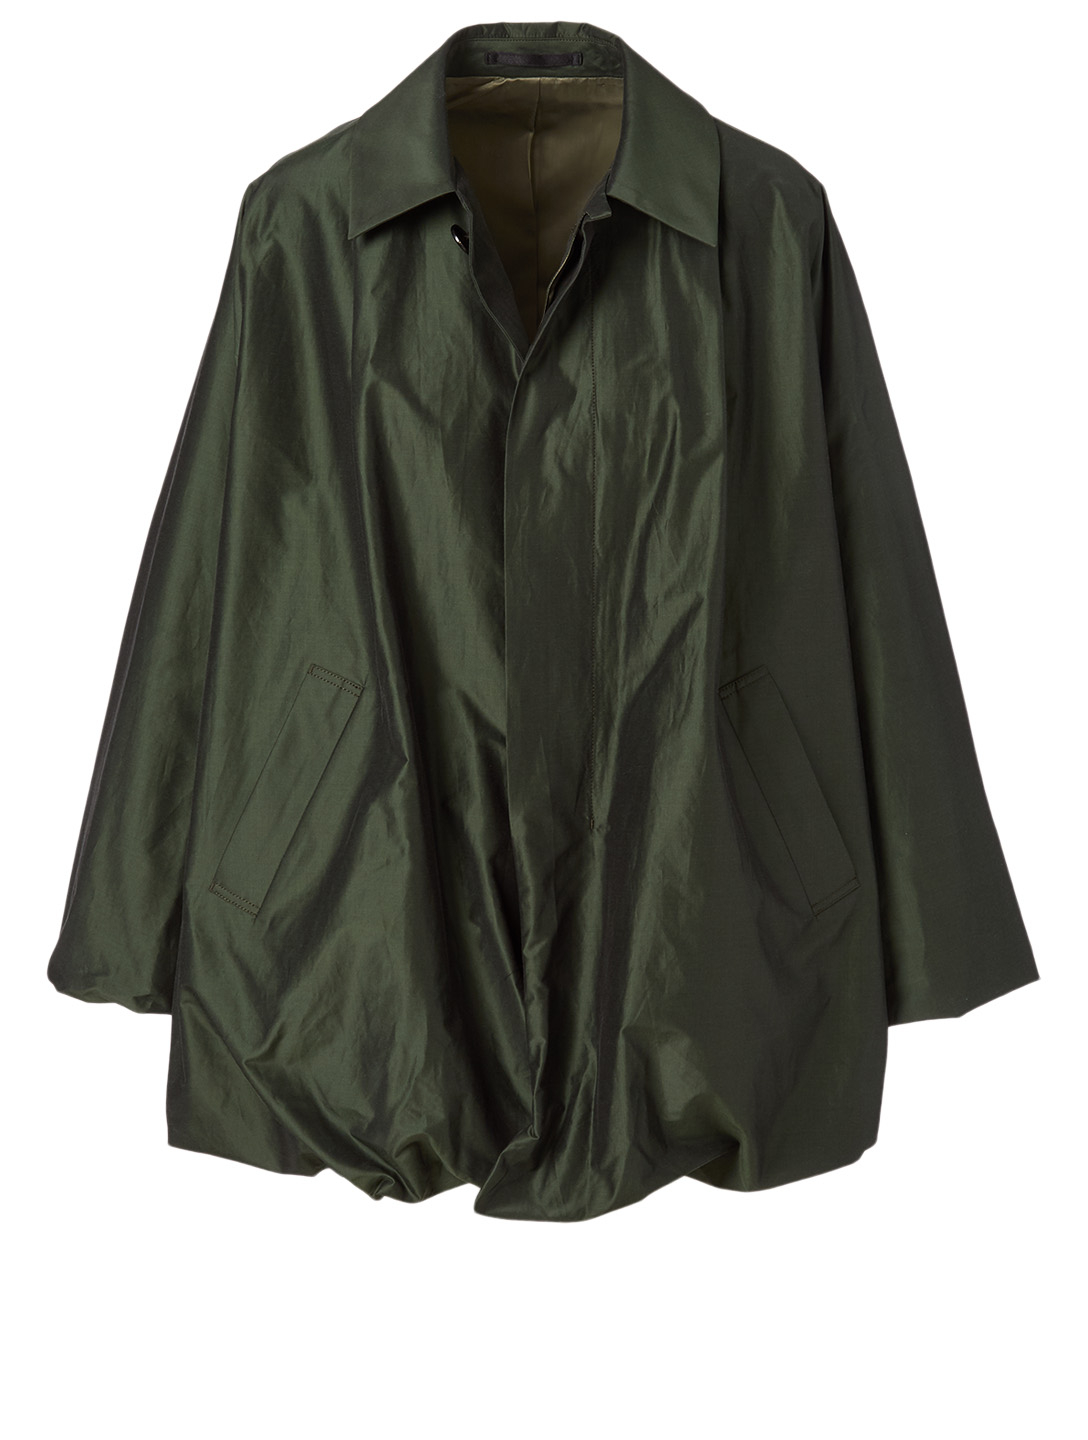 NOIR KEI NINOMIYA Cotton And Silk Taffeta Coat Women's Green